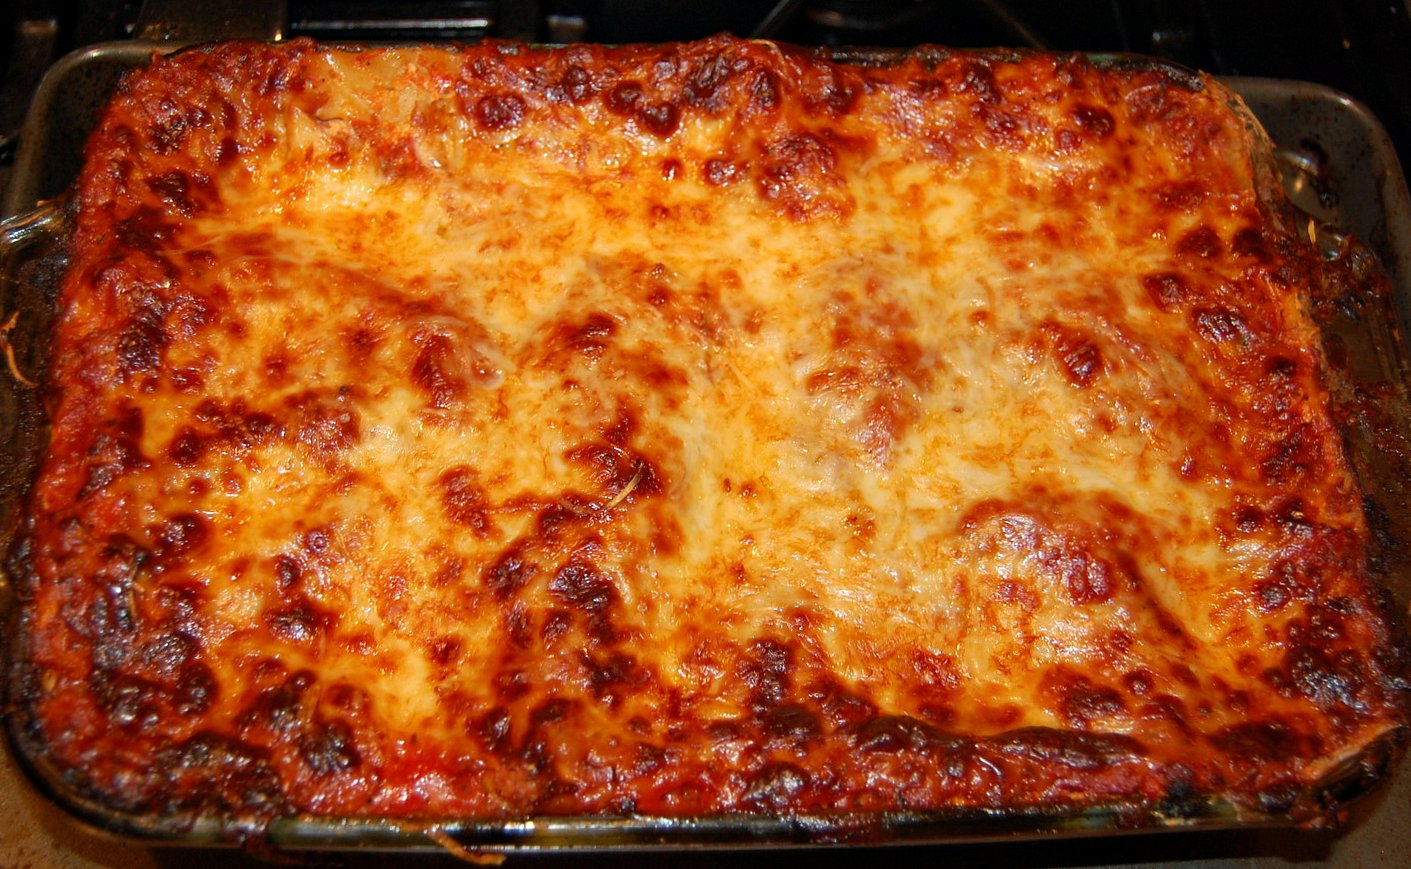 ... Journey to Become a Foodie: Best Tasting Homemade Lasagna Recipe Ever